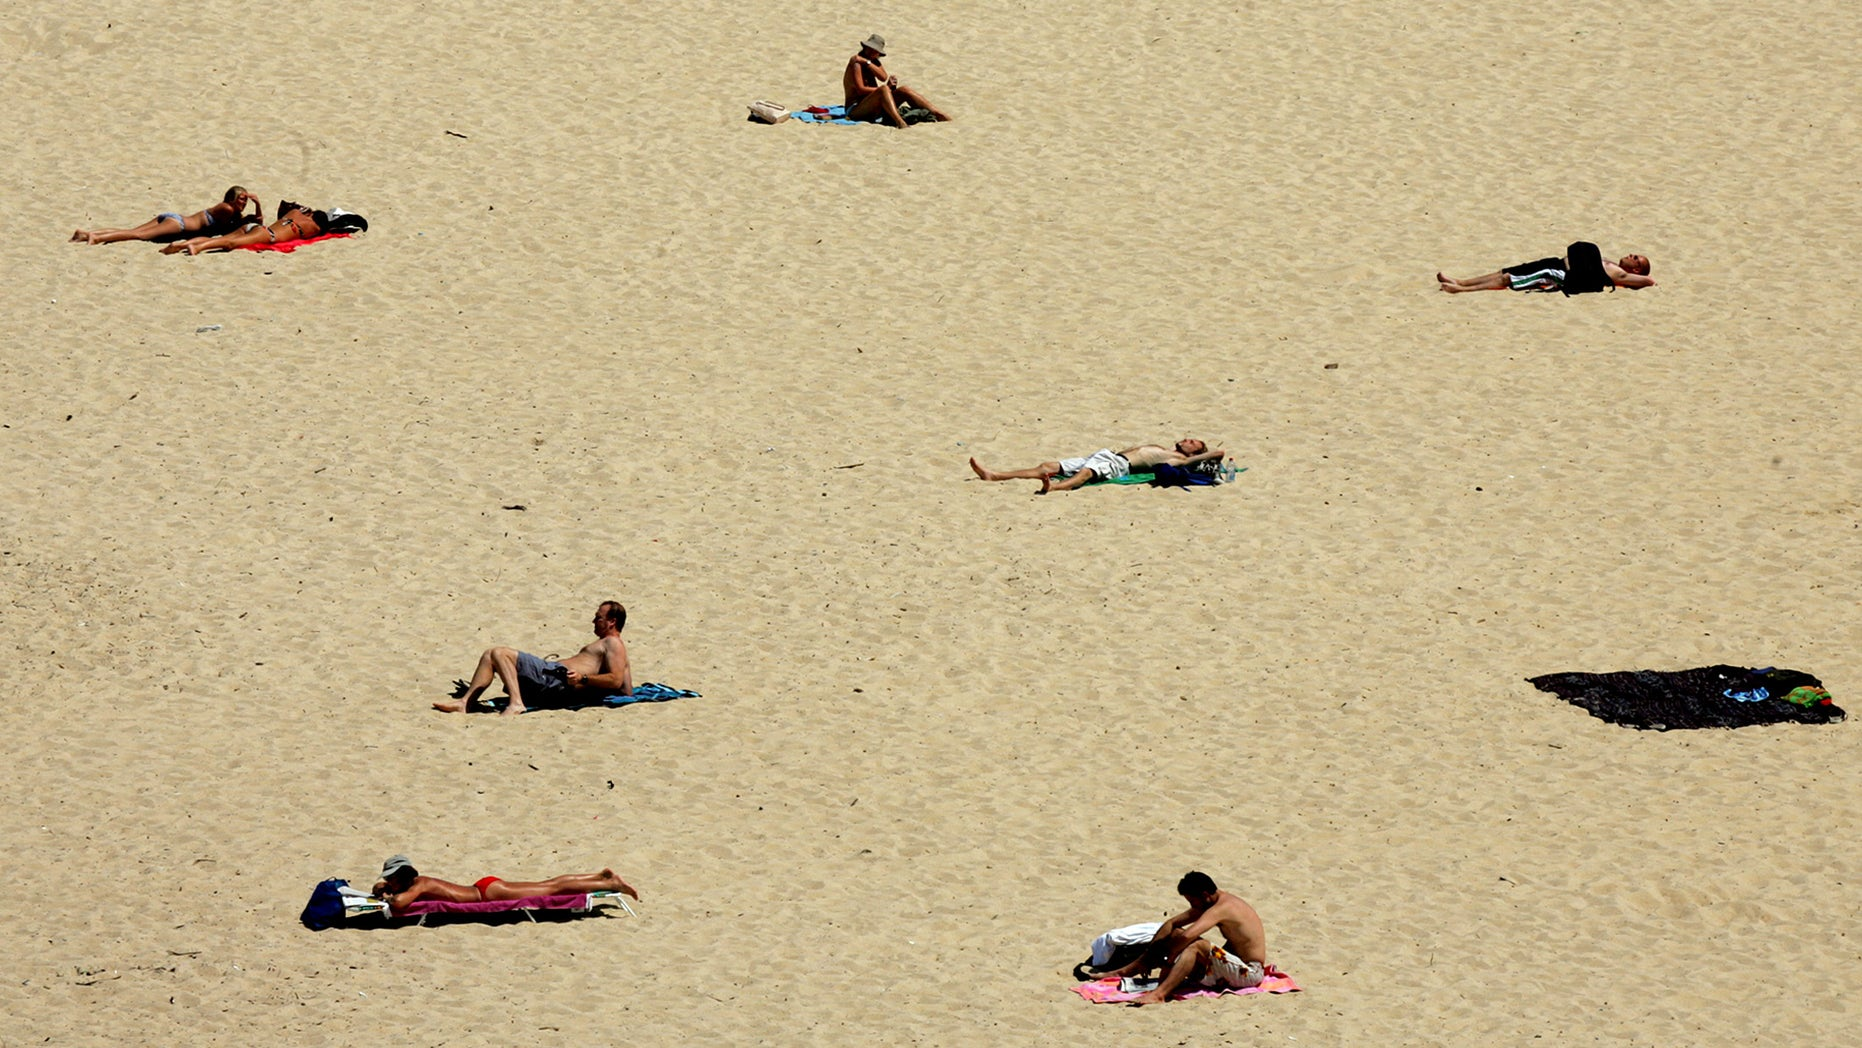 Beachgoers lie on Sydney's Bronte Beach on the hottest October day ever recorded October 13, 2004. The city reached a temperature of 37.9 degrees Celcius (100.2 degrees Fahrenheit), which beat the old mark of 37.4 degrees Celcius (99.3 degrees Fahrenheit) set in 1942.